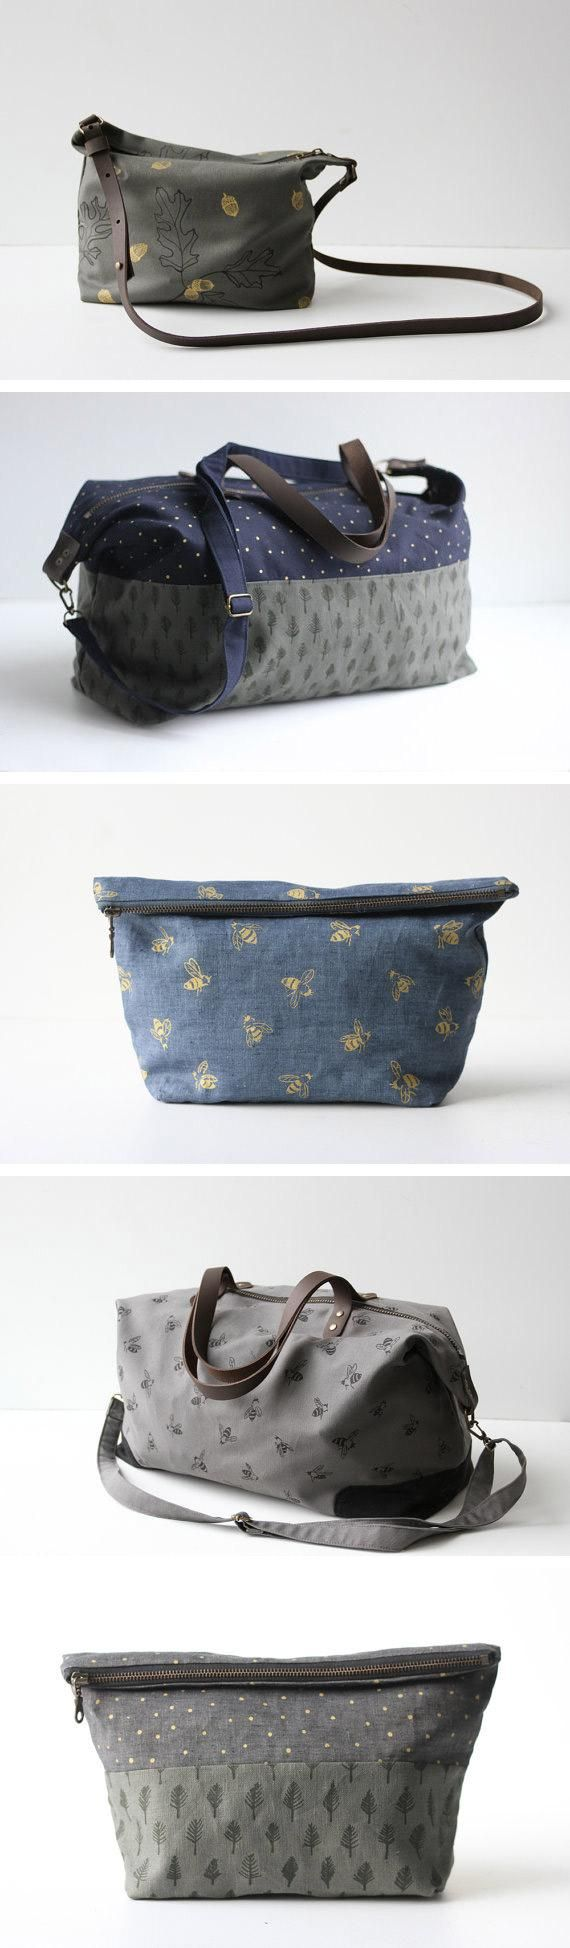 Jennarosehandmade has a way with nature-inspired, nearly-gender-neutral travel bags and pouches. #etsyfinds